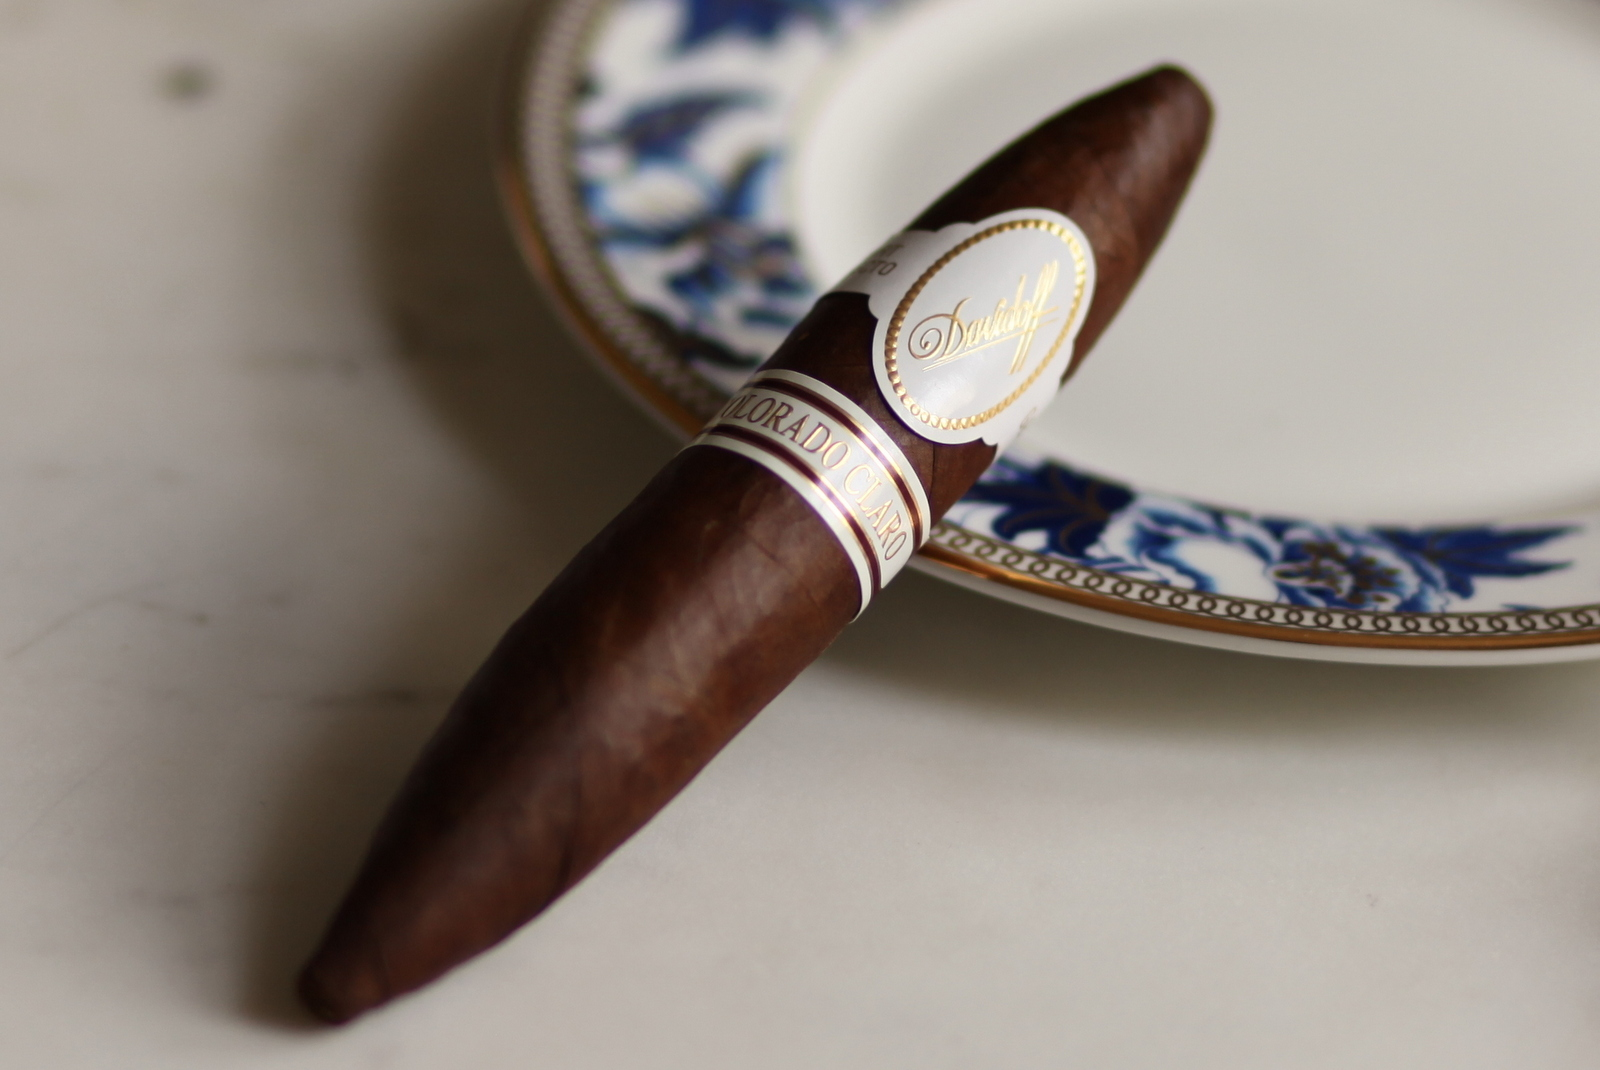 Davidoff Colorado Claro Short Perfecto Review Closeup